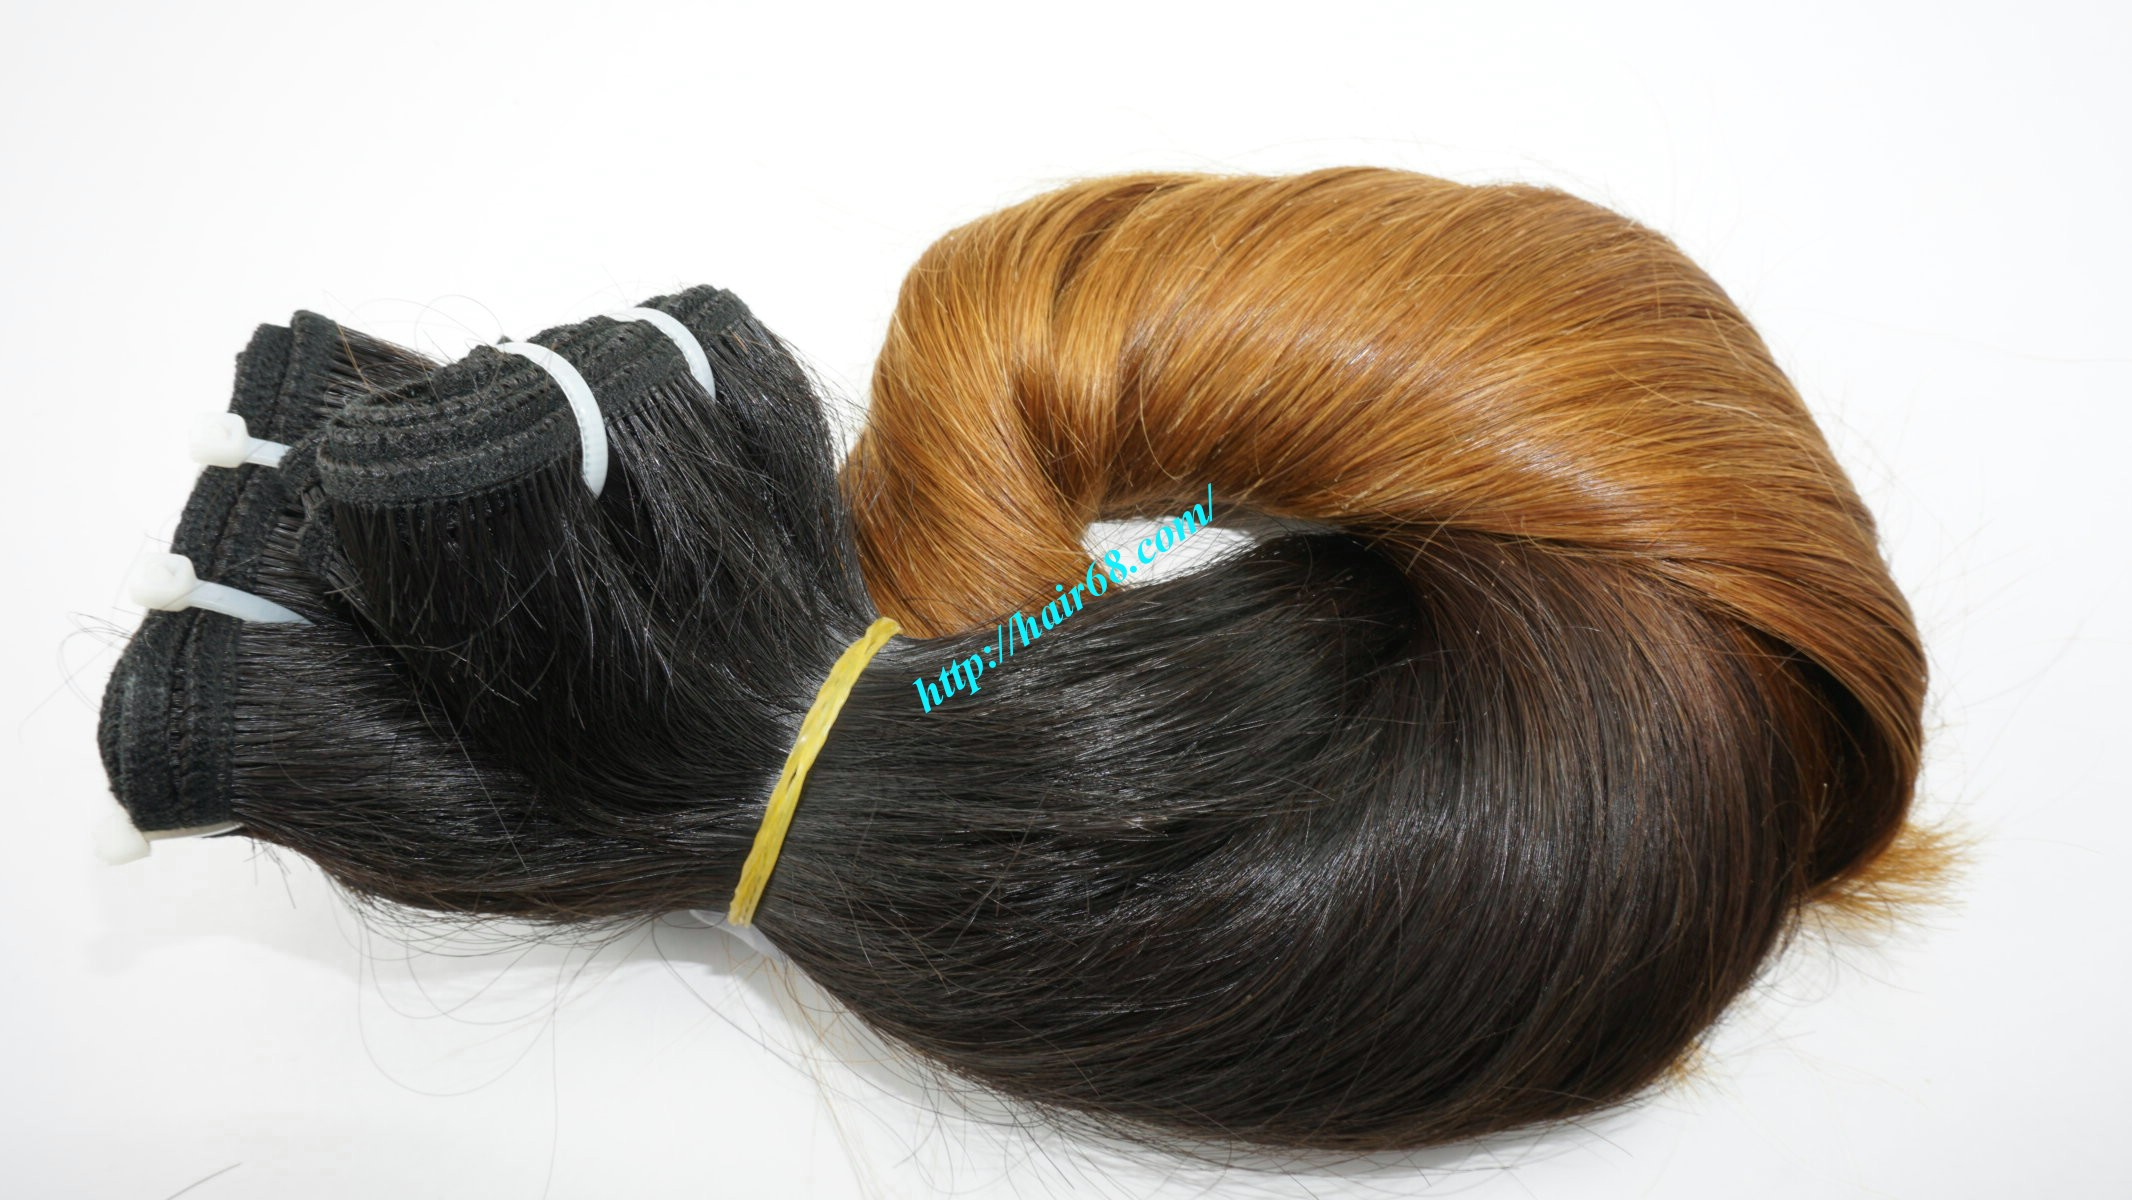 26 inch remy ombre hair extensions vietnam hair 6